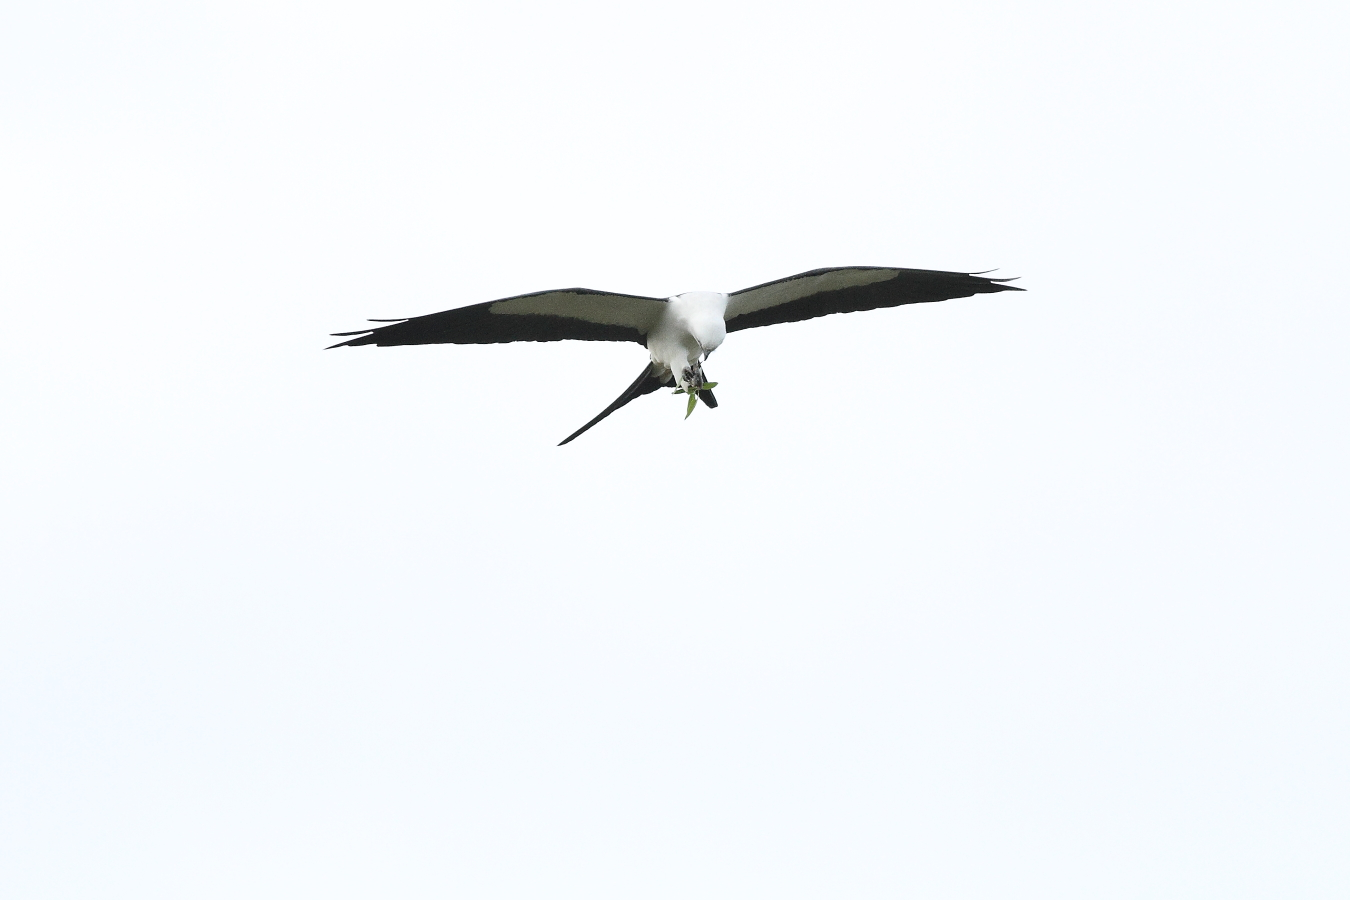 Swallow-tailed Kite - note rudder-like tail